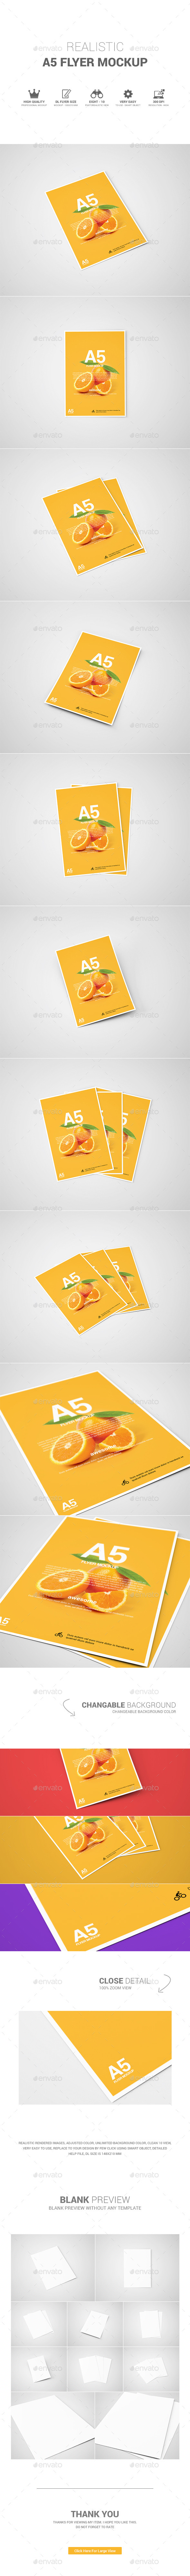 GraphicRiver A5 Flyer Mockup 11641925